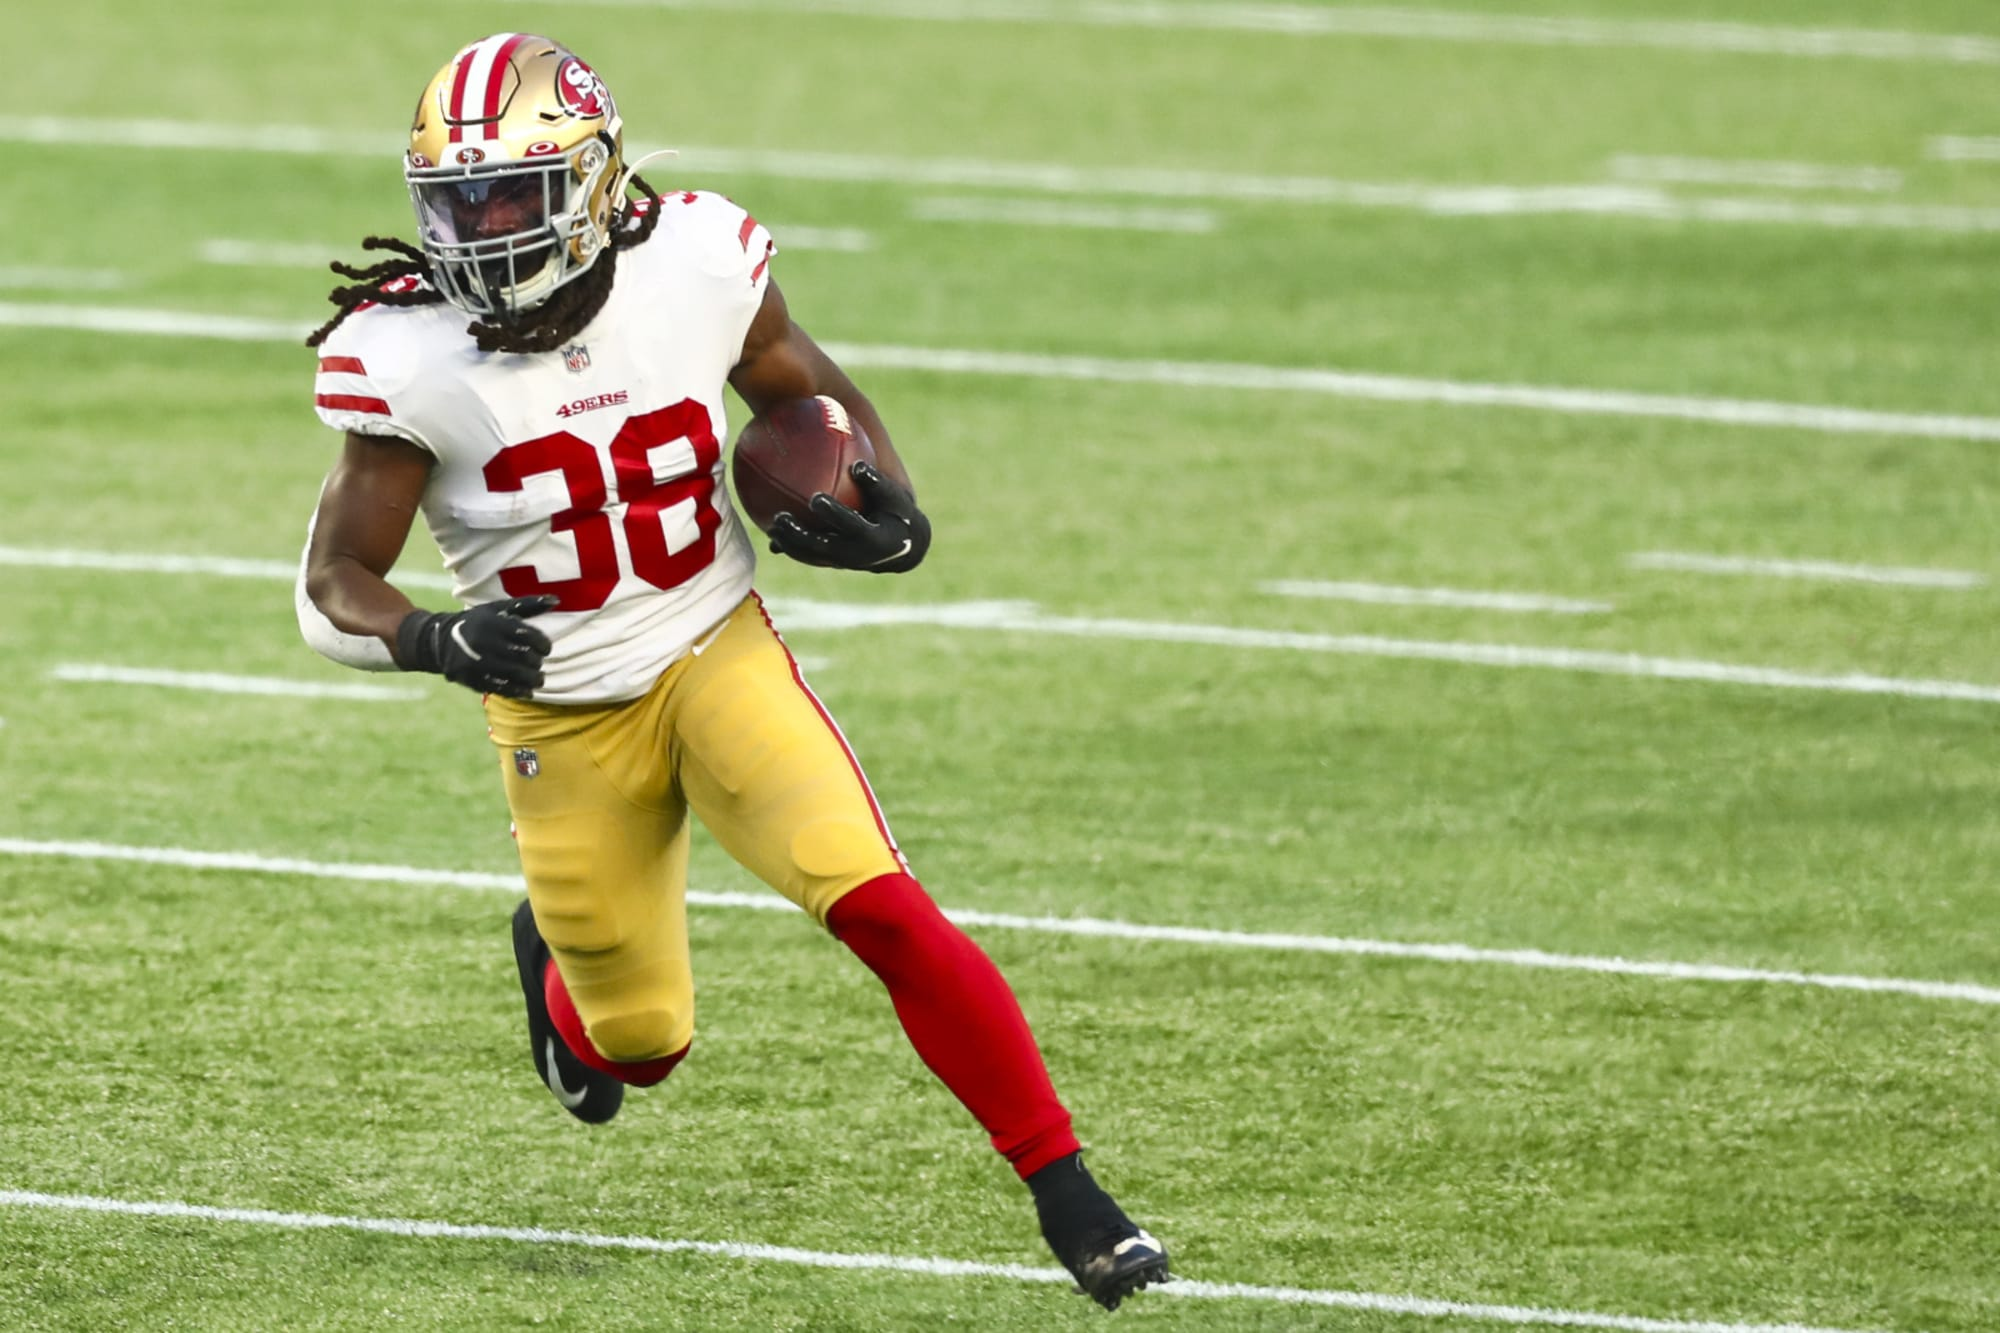 49ers roster 2021: Does JaMycal Hasty survive cuts?